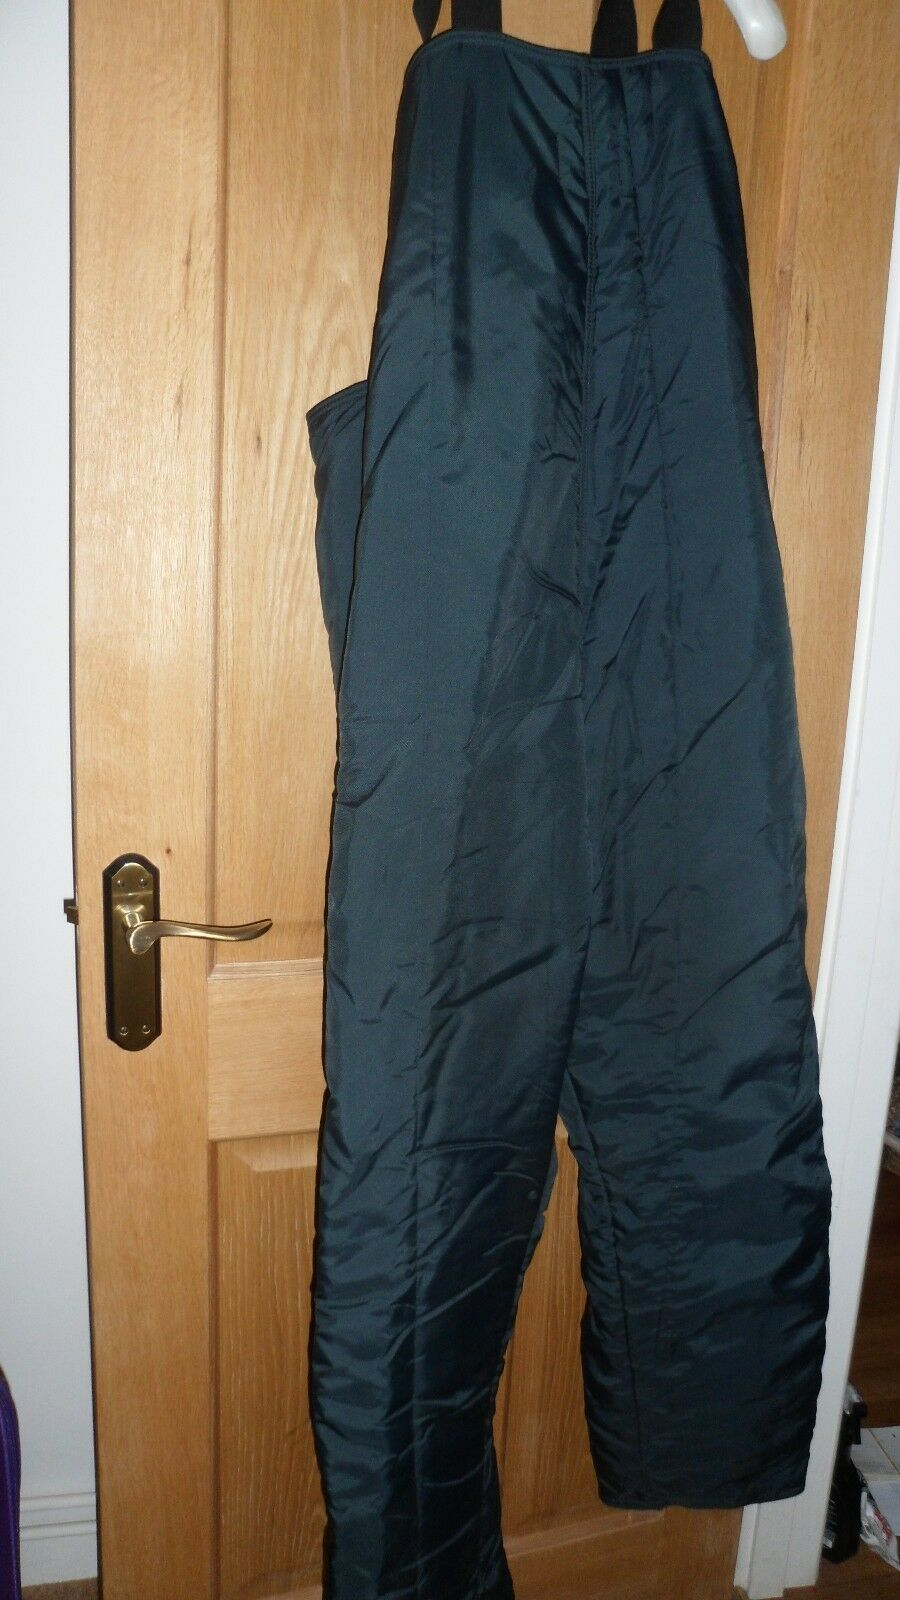 ARCO COLDSTORE SKI TROUSER'S SIZE LARGE NAVY